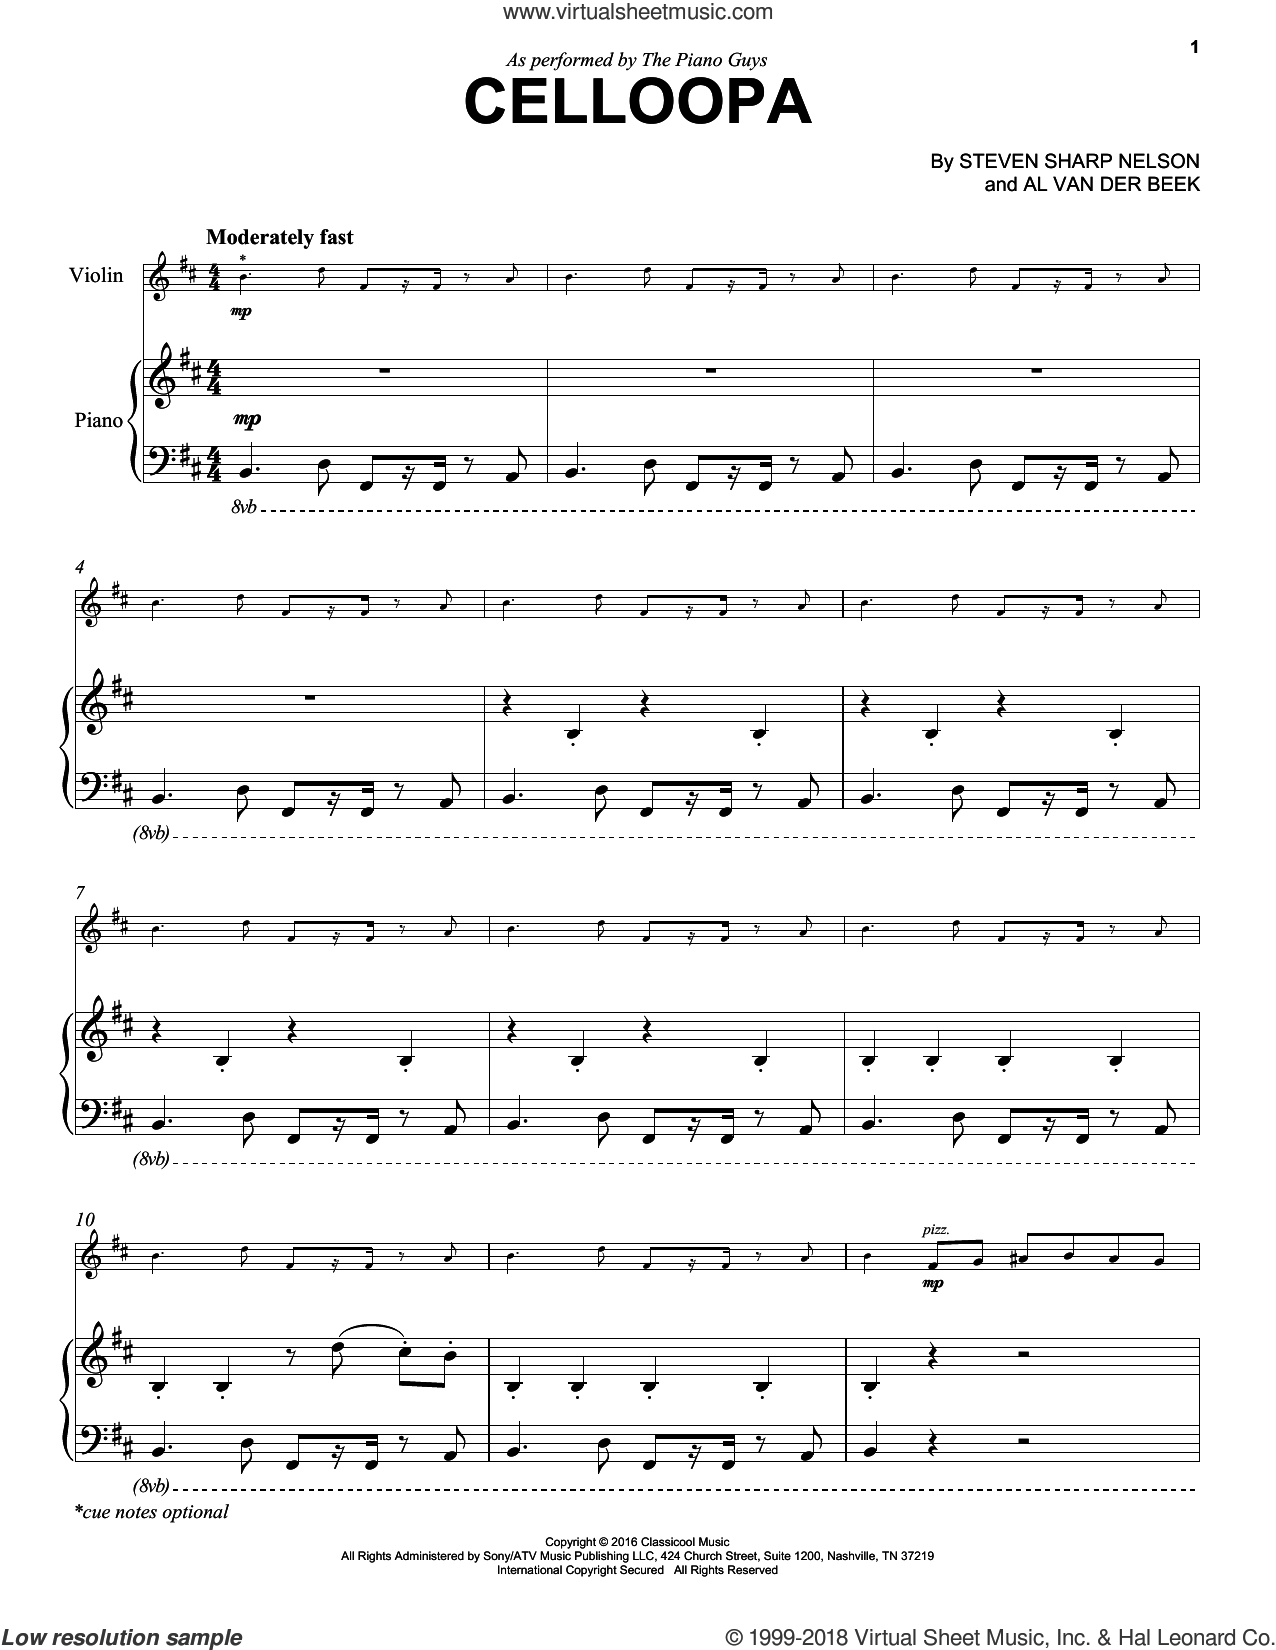 Celloopa sheet music for violin and piano by The Piano Guys, Al van der Beek and Steven Sharp Nelson, intermediate skill level